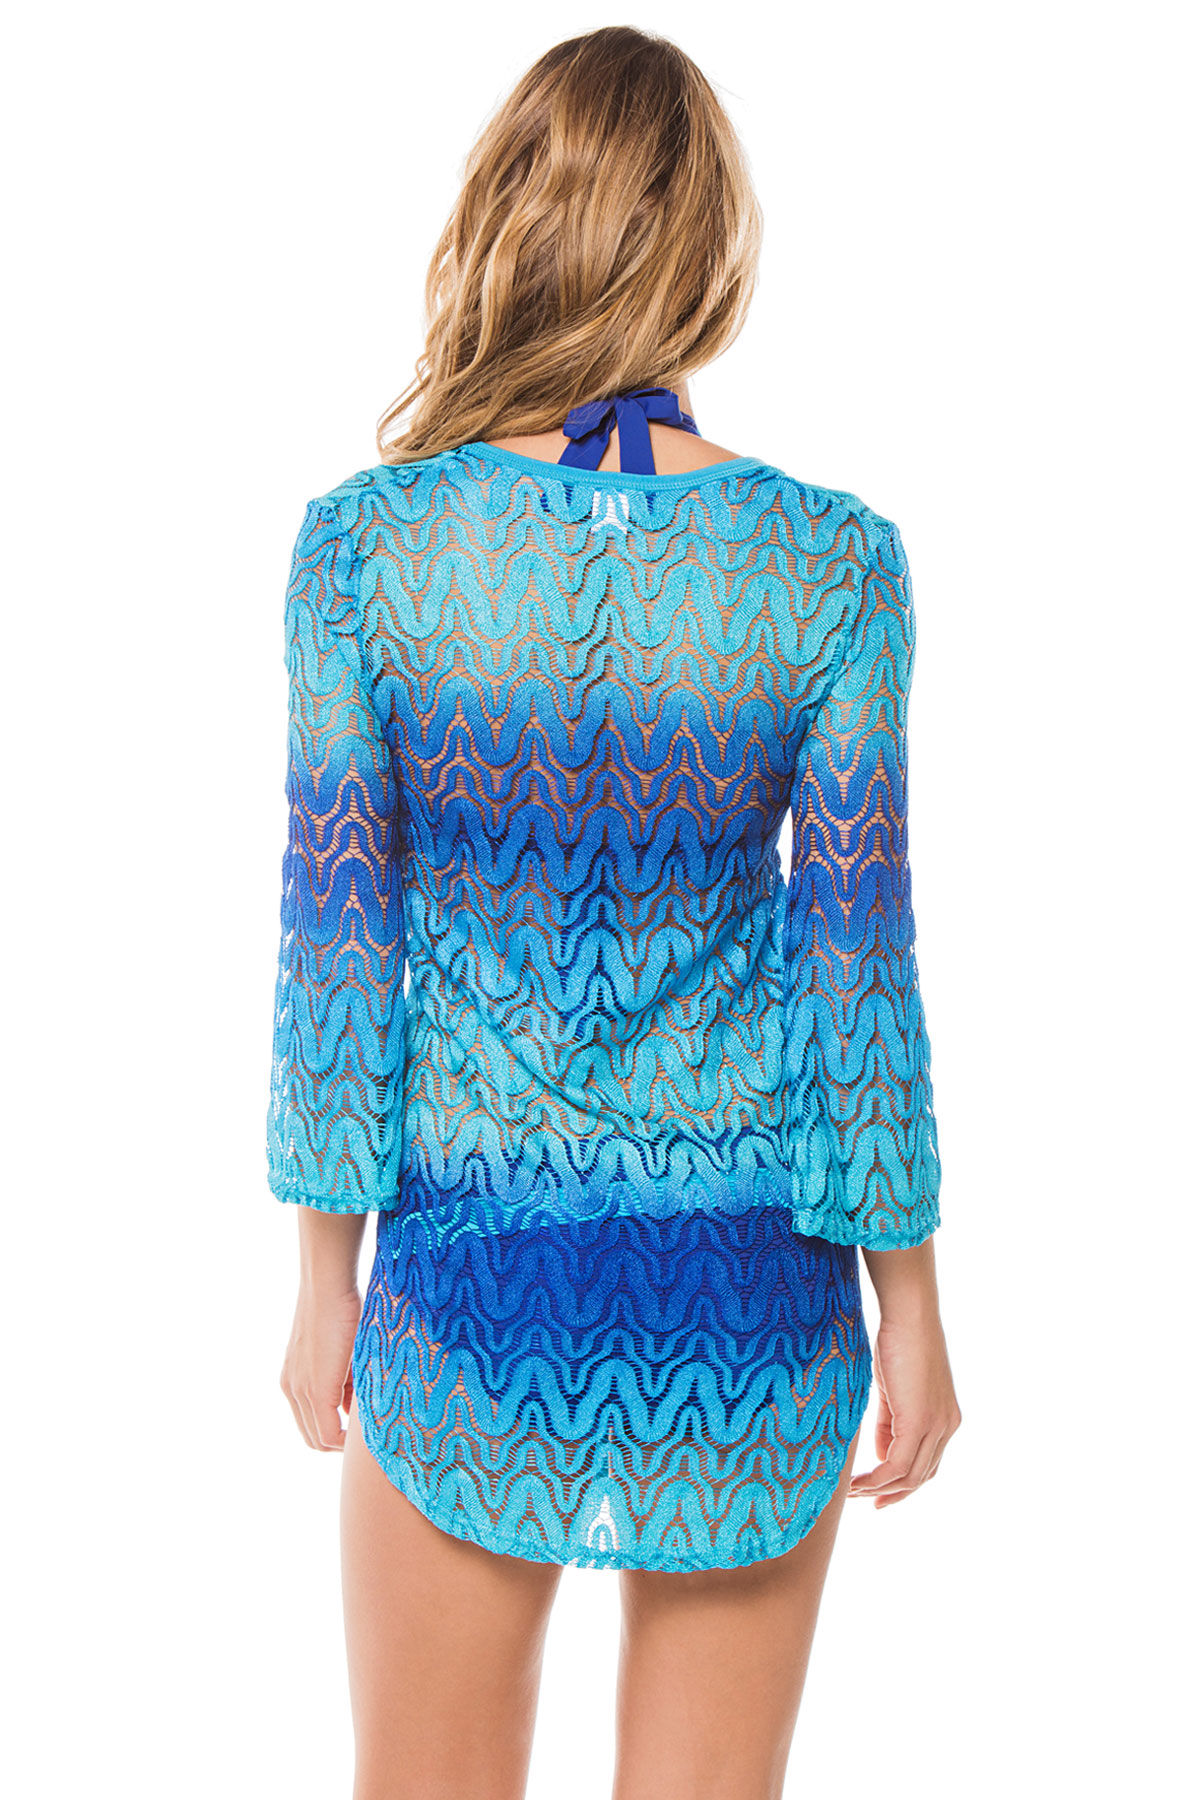 Ombre Crochet V-Neck Tunic - Ultramarine 2